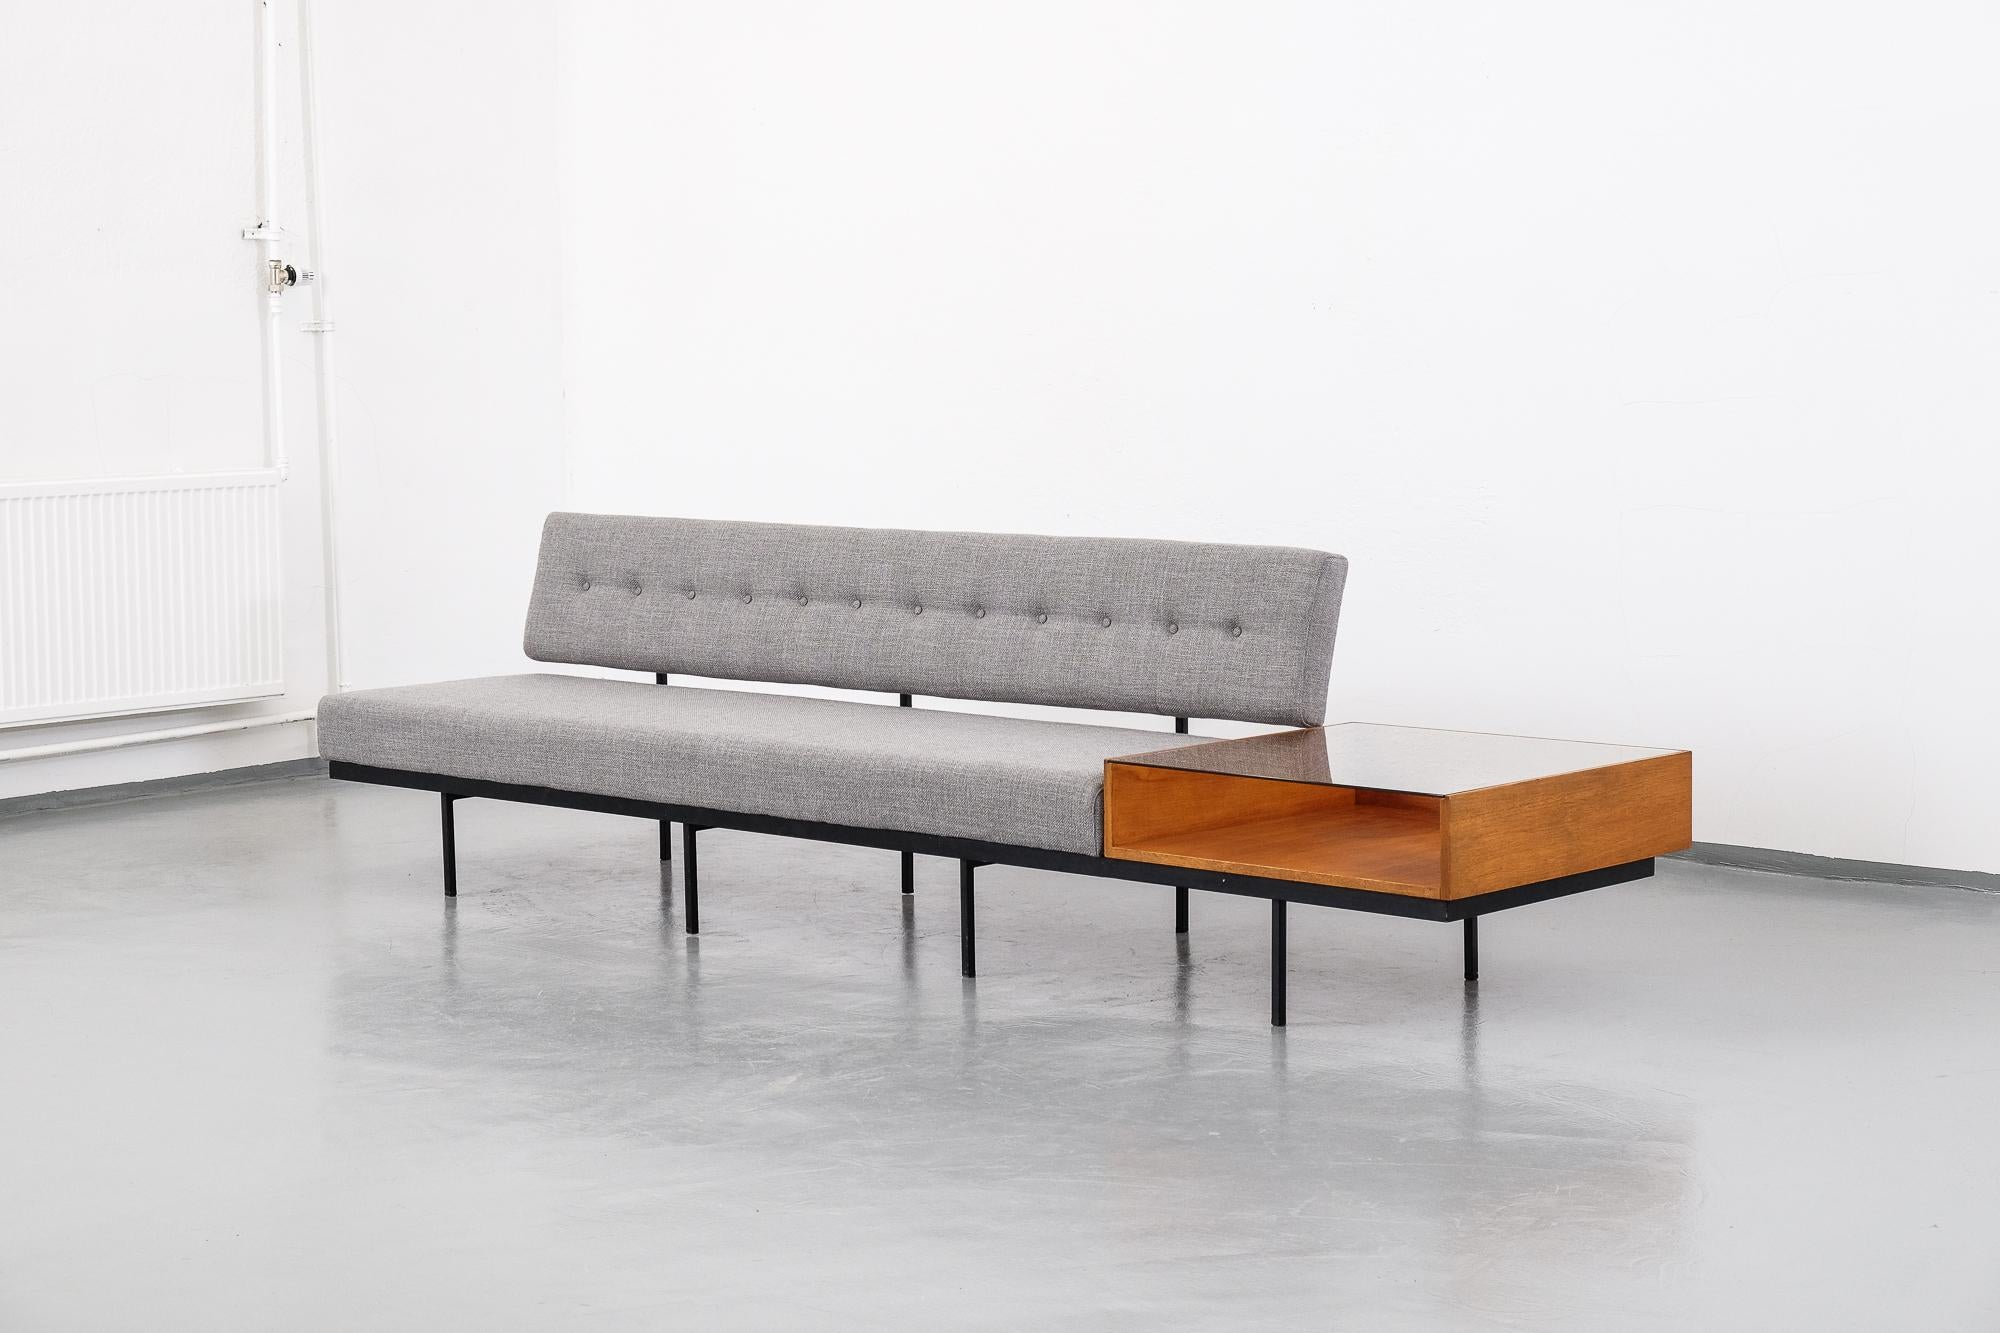 Florence Knoll Sessel Mid Century Modern Florence Knoll Sofa With Walnut Table Attachment 1950s